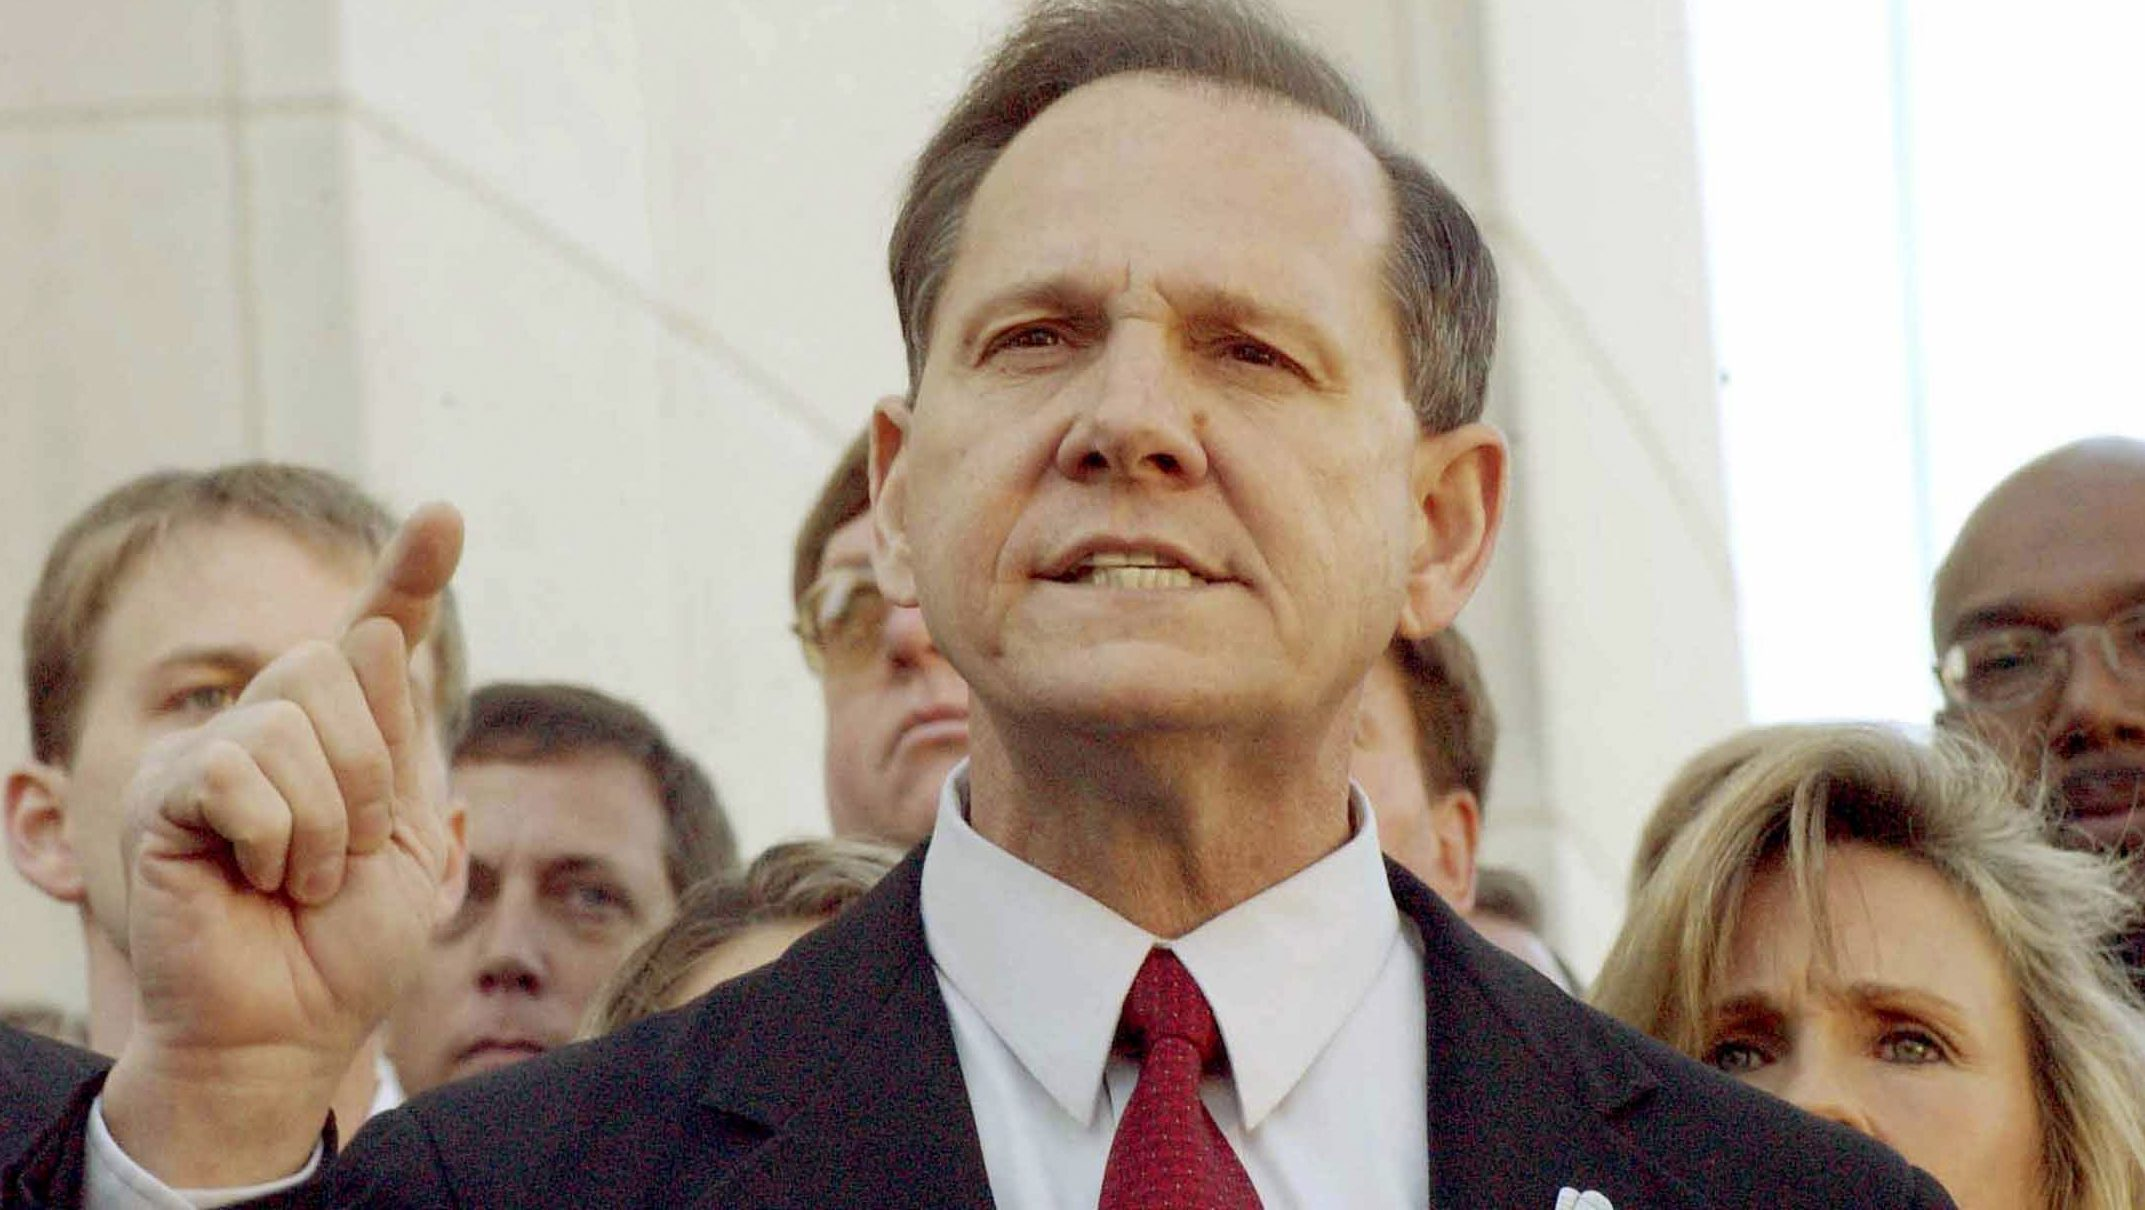 FILE PHOTO: Alabama Chief Justice Roy Moore faces the media after being removed from office in Montgomery, Alabama, U.S. November 13, 2003.  REUTERS/Bob Ealum/File Photo - TM3EC9U11T501